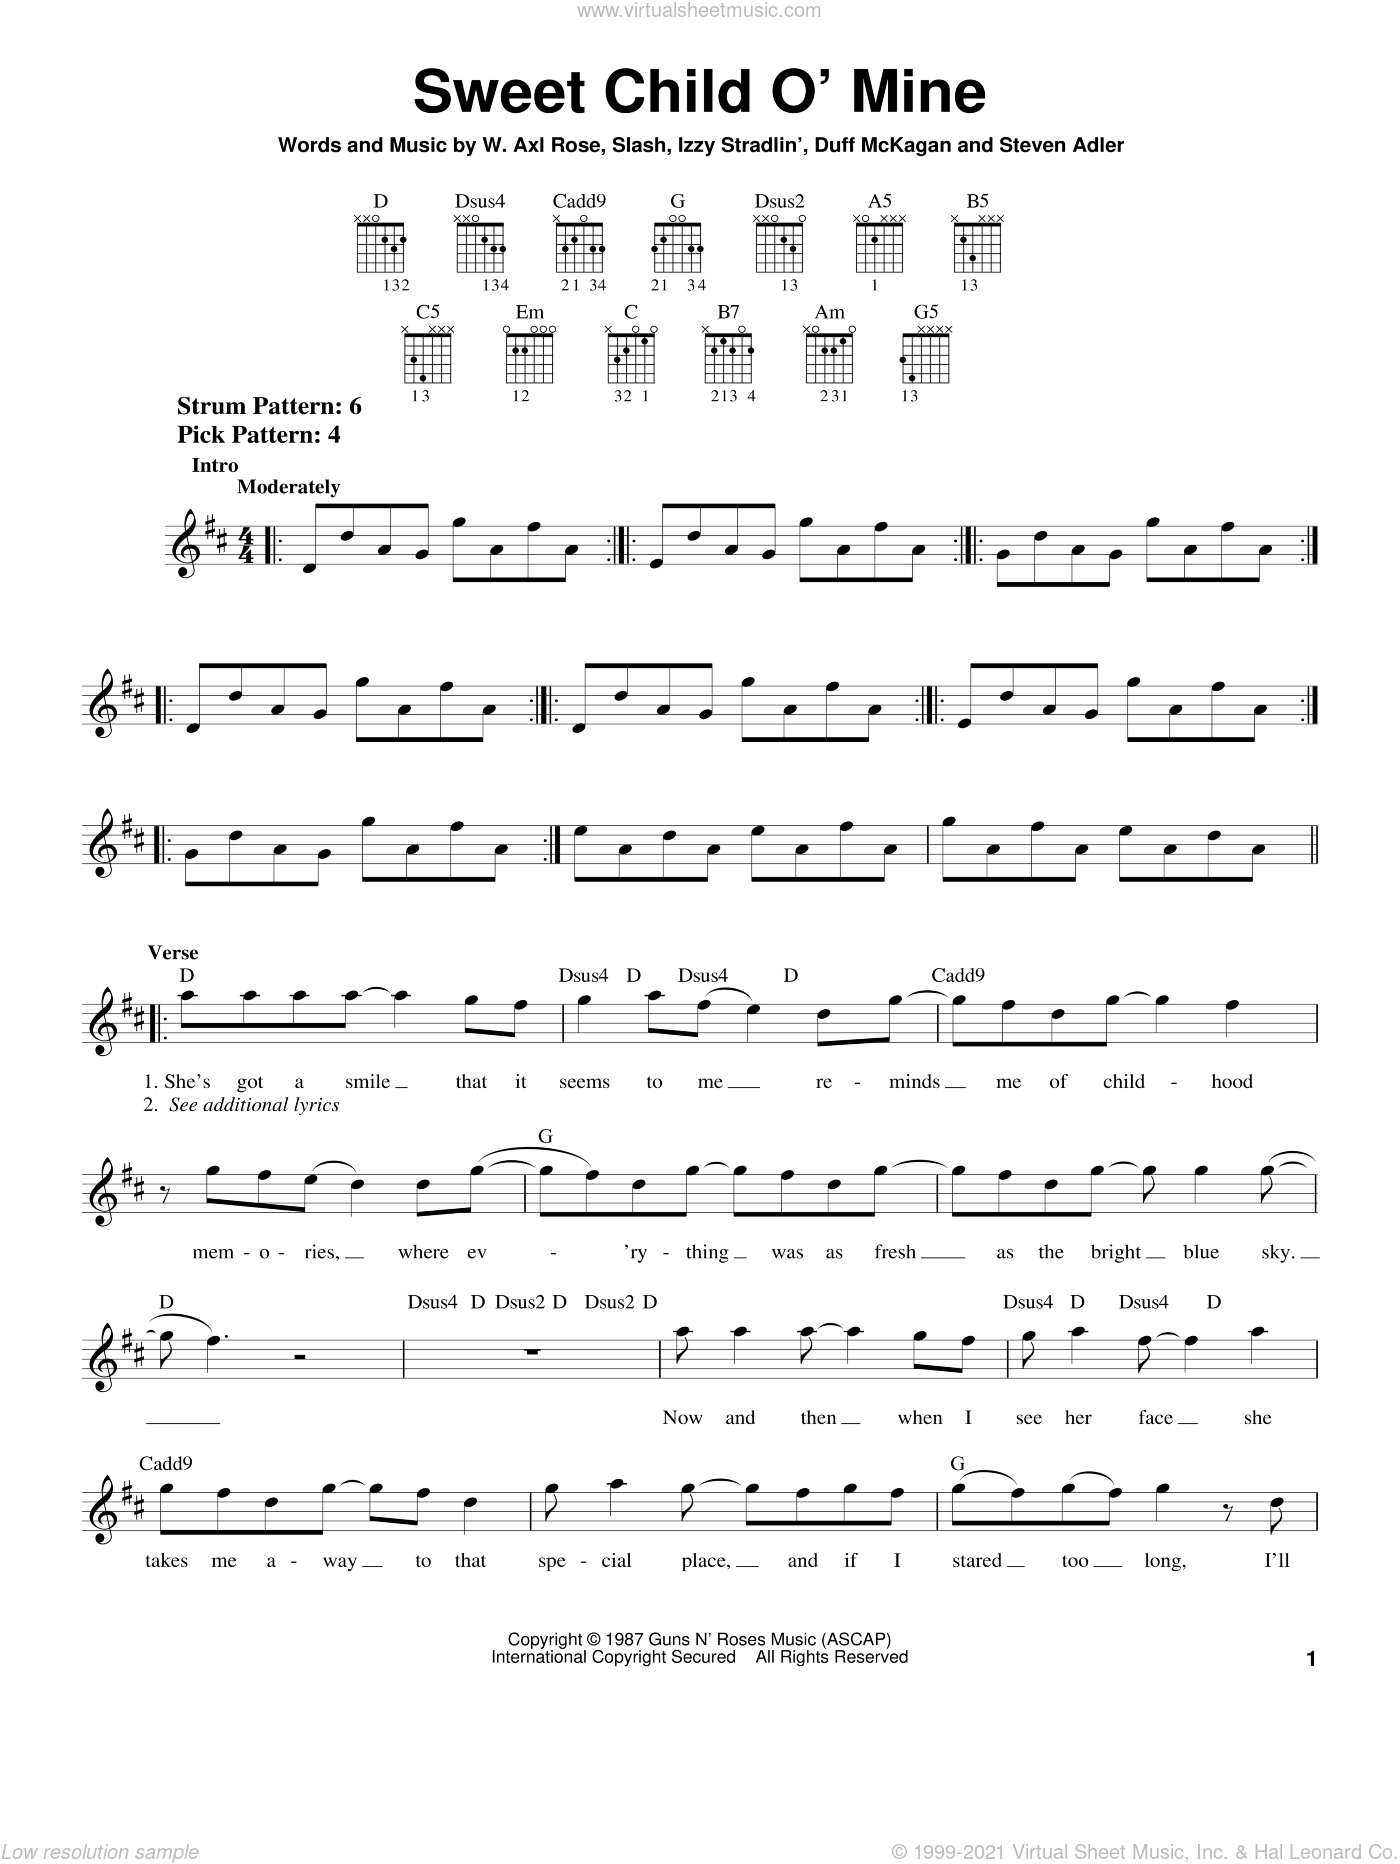 Sweet Child O' Mine sheet music for guitar solo (chords) by Axl Rose